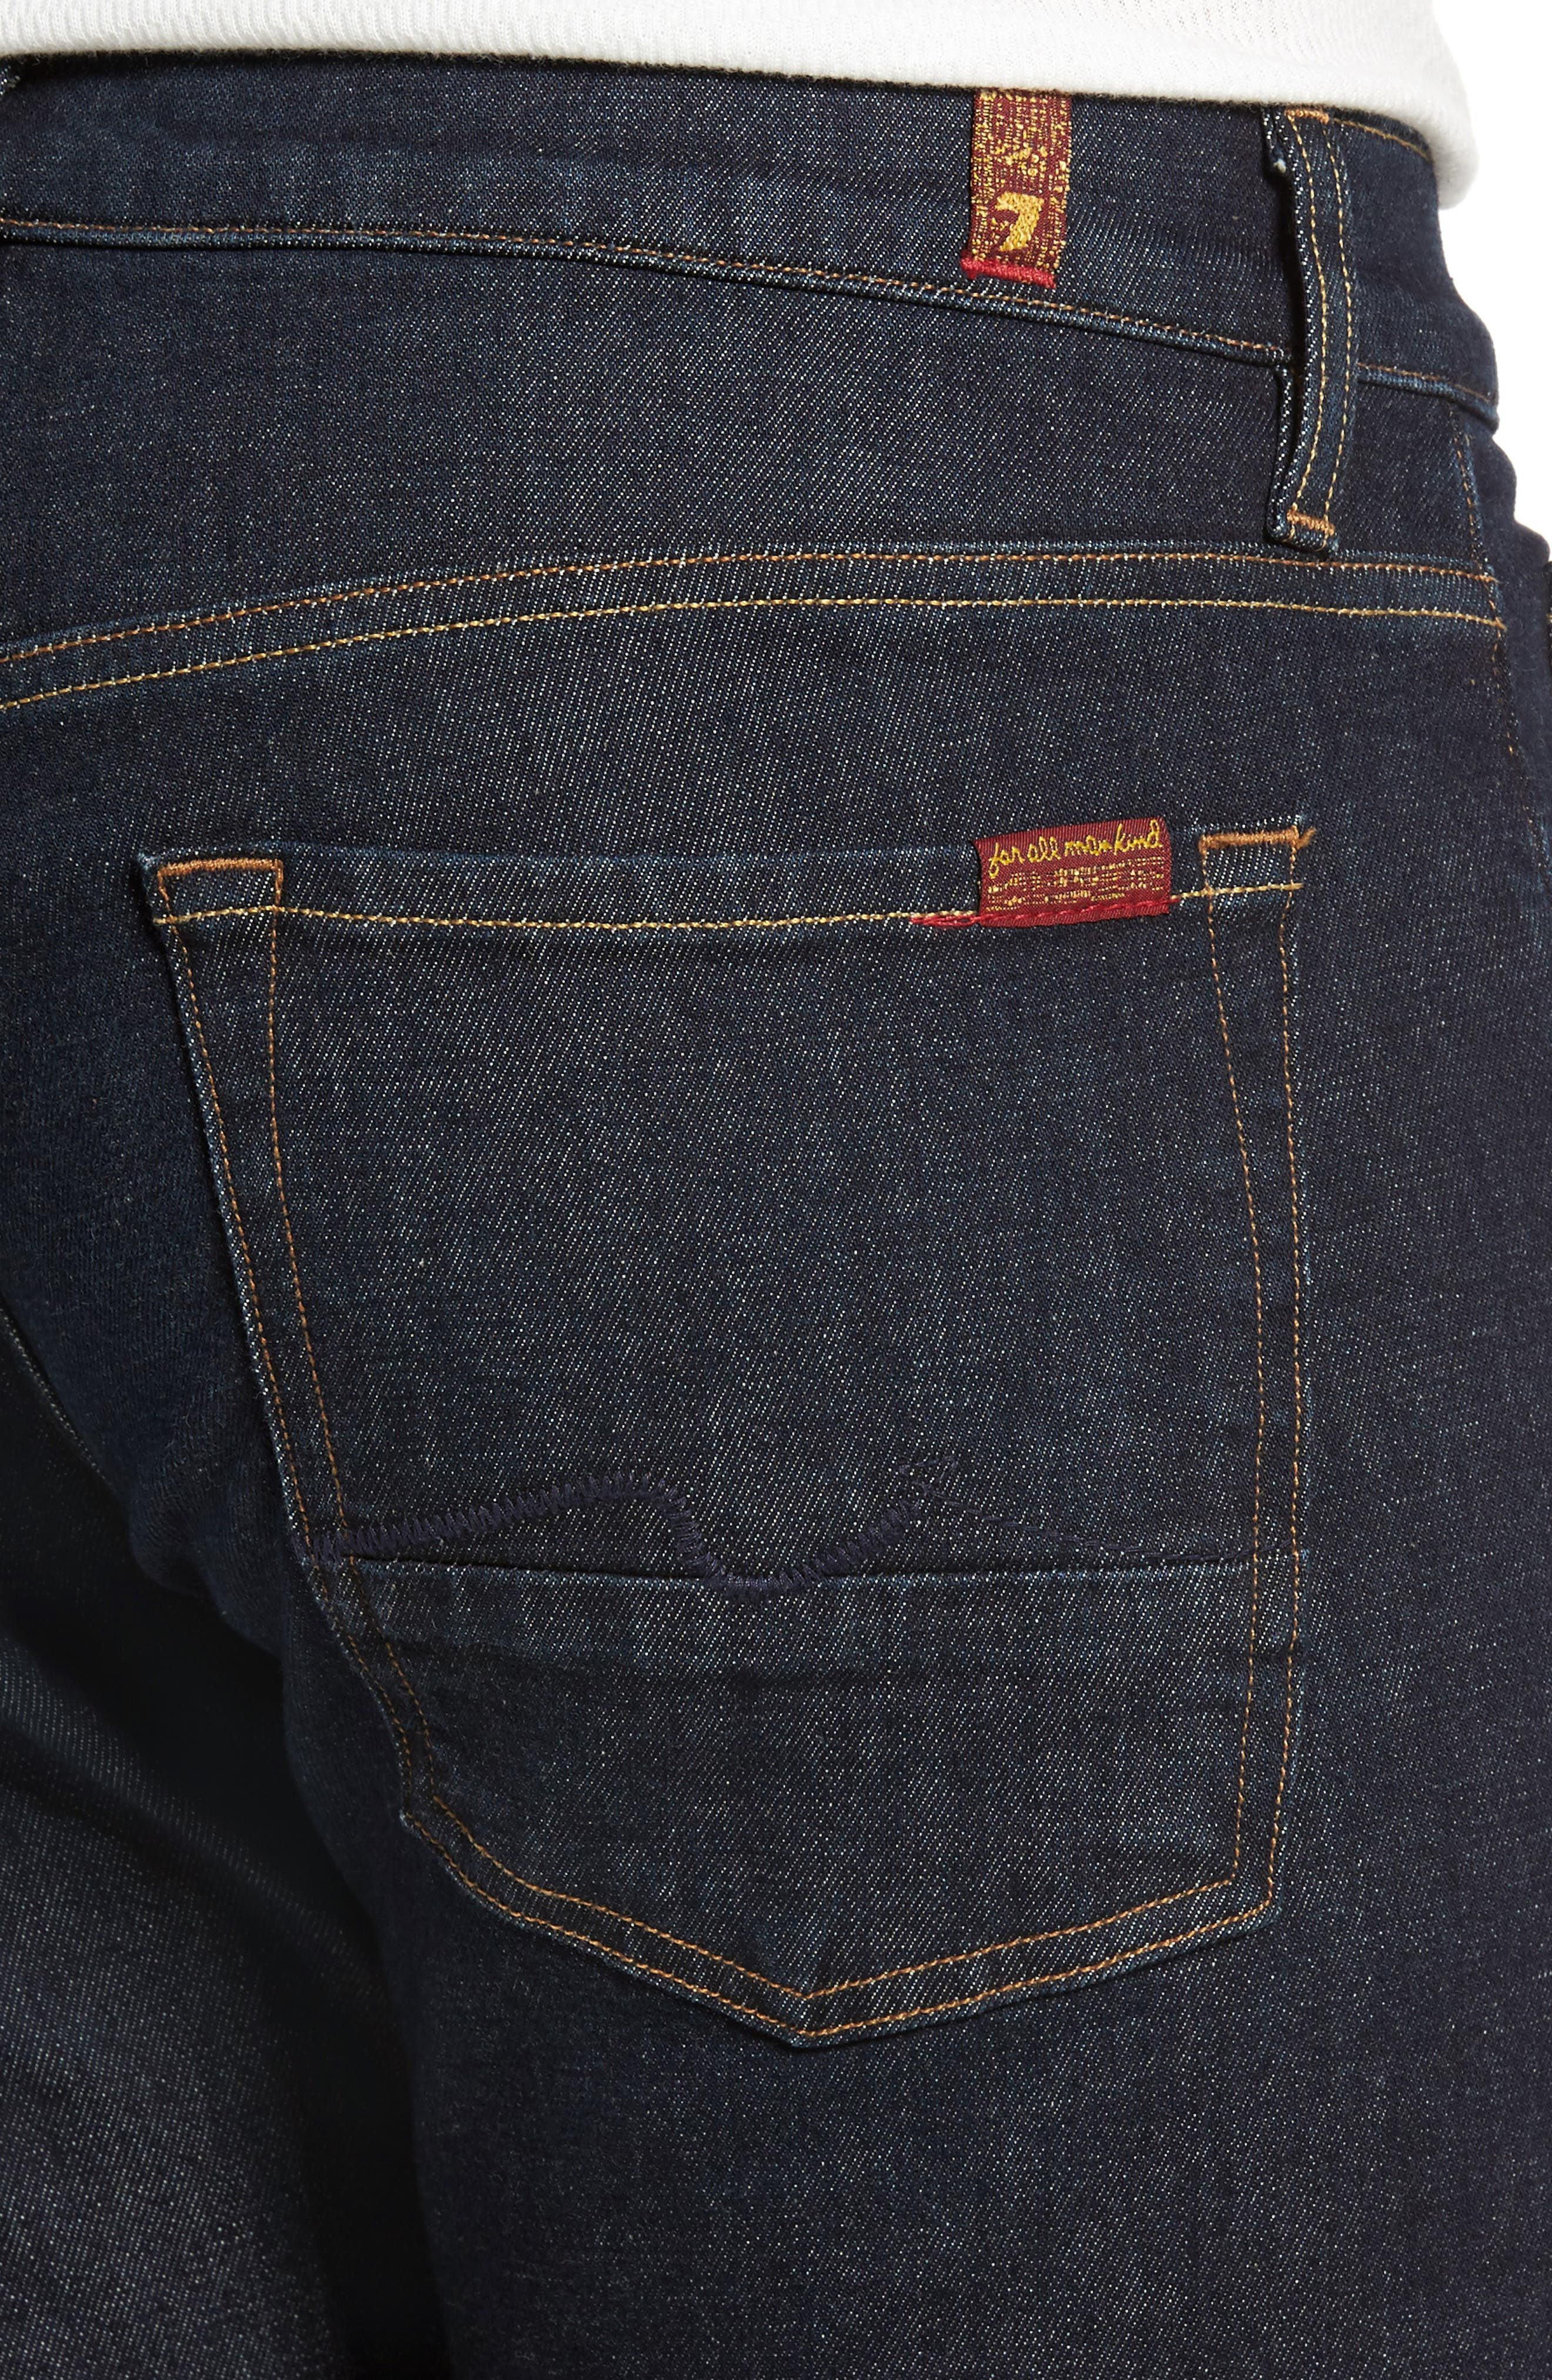 Austyn Relaxed Fit Jeans,                             Alternate thumbnail 4, color,                             Codec